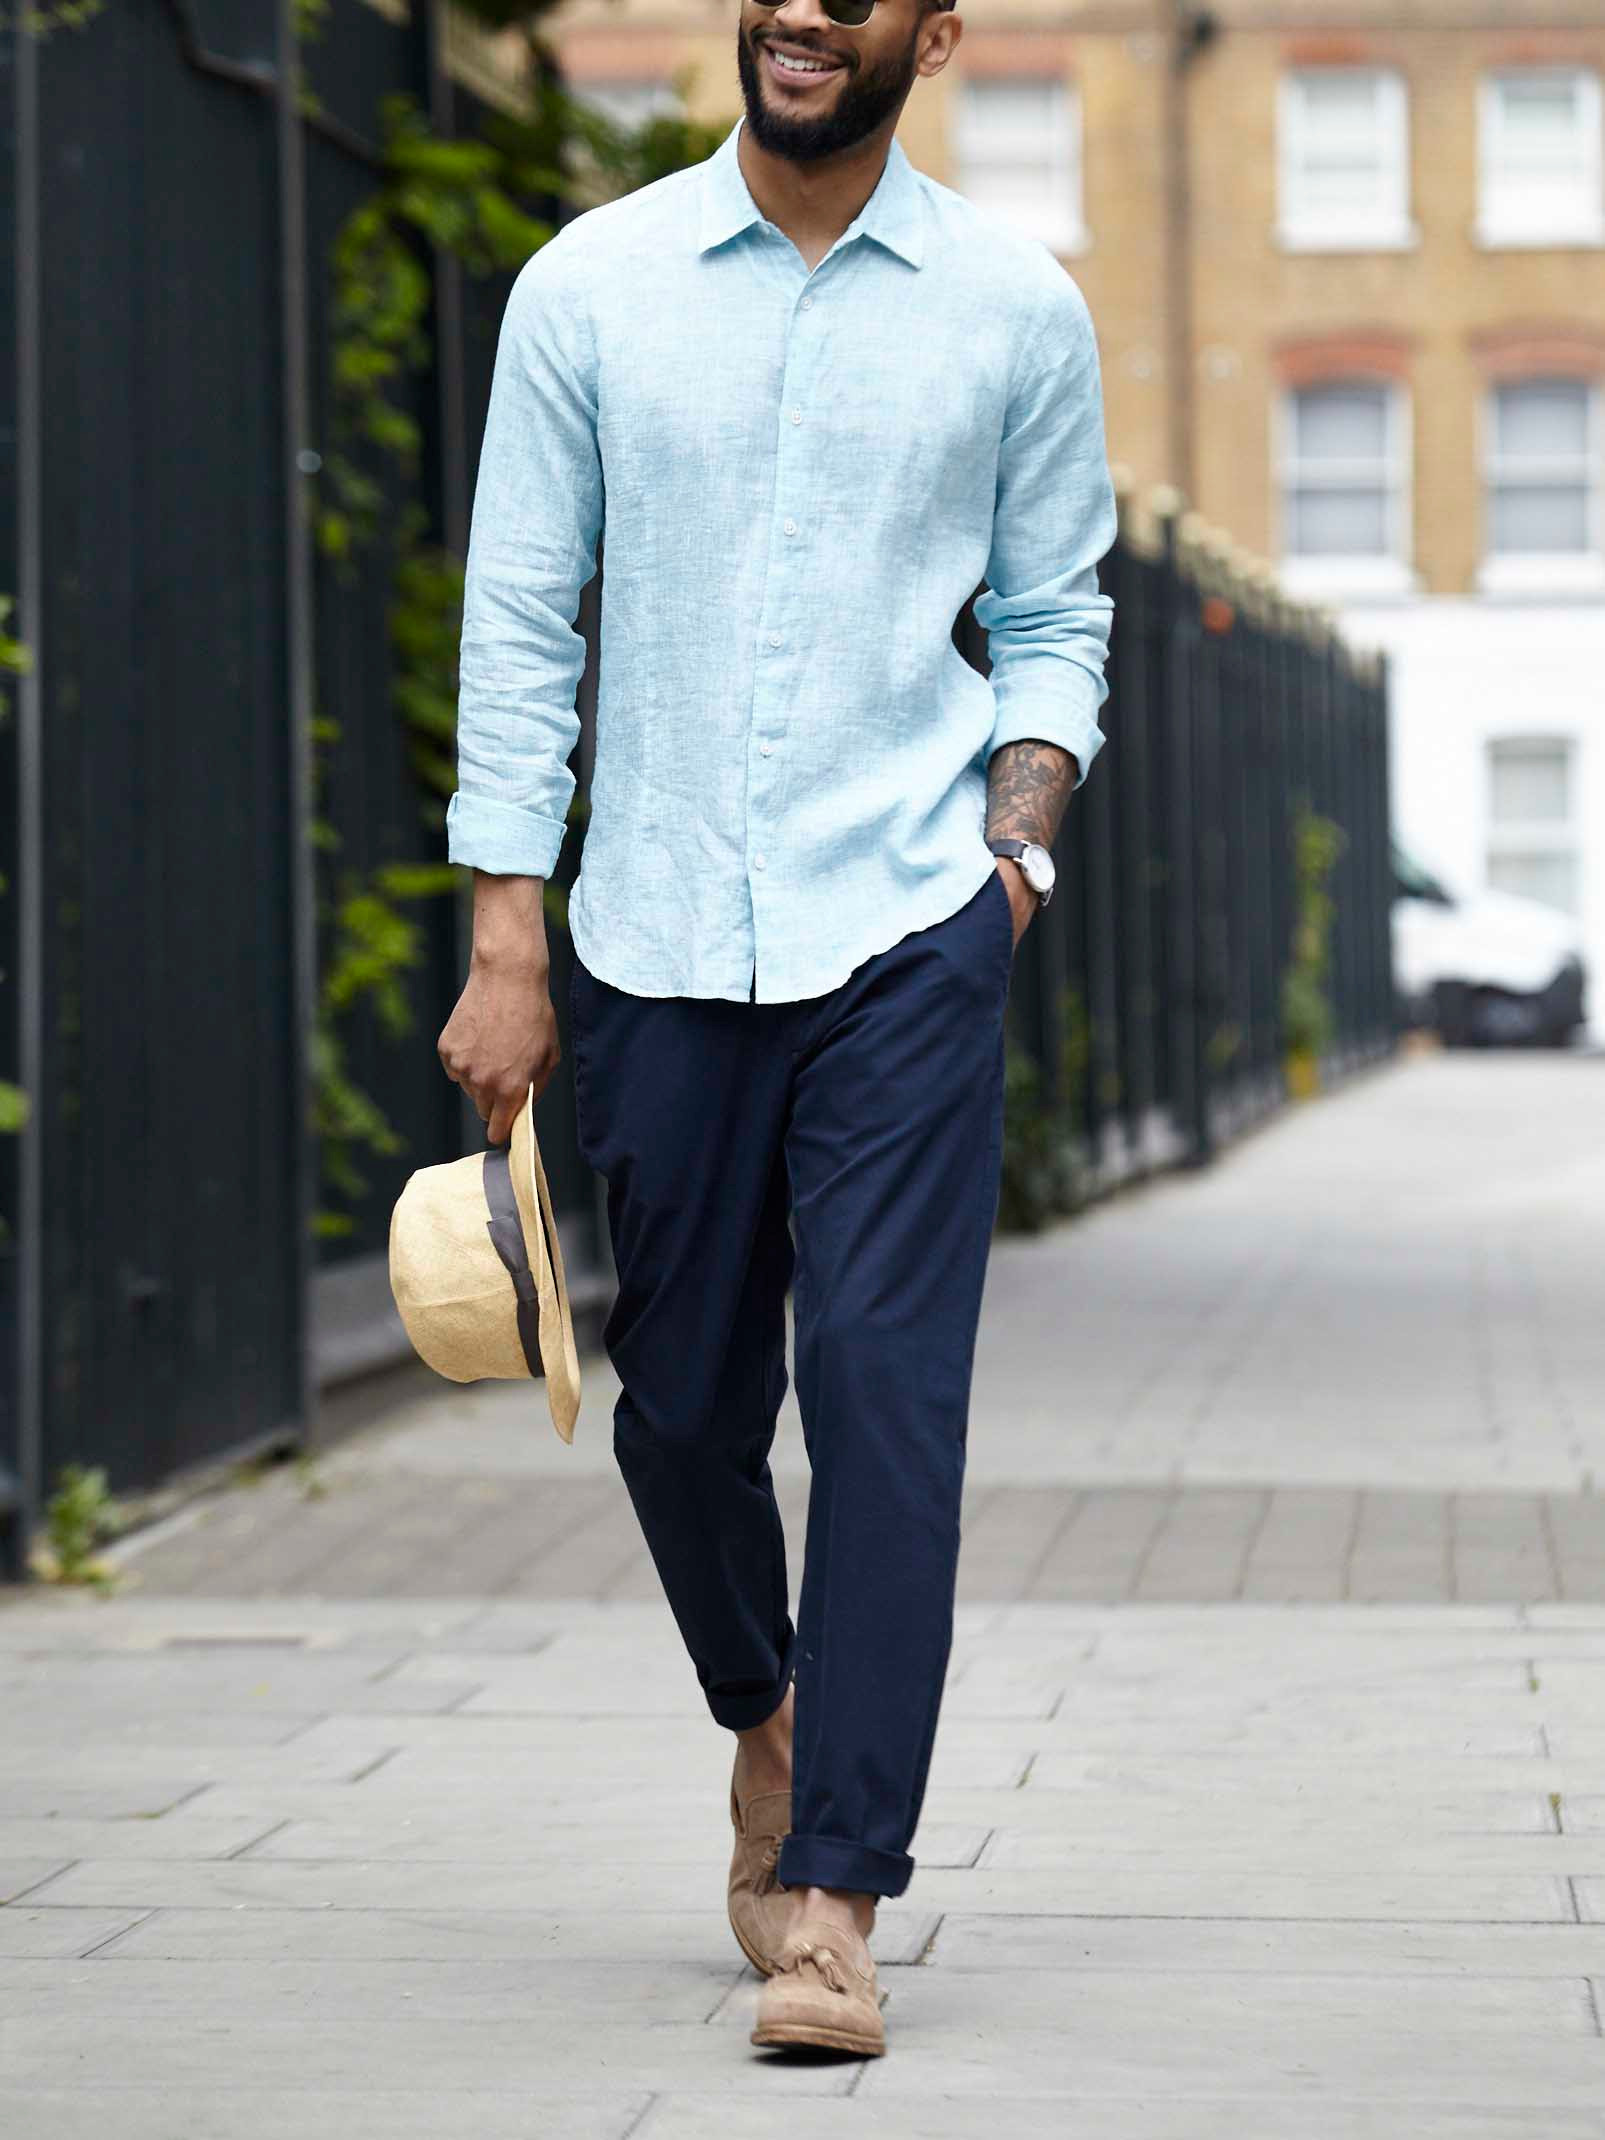 Men's outfit idea for 2021 with linen shirt, navy chinos, leather strap watch, loafers. Suitable for summer.